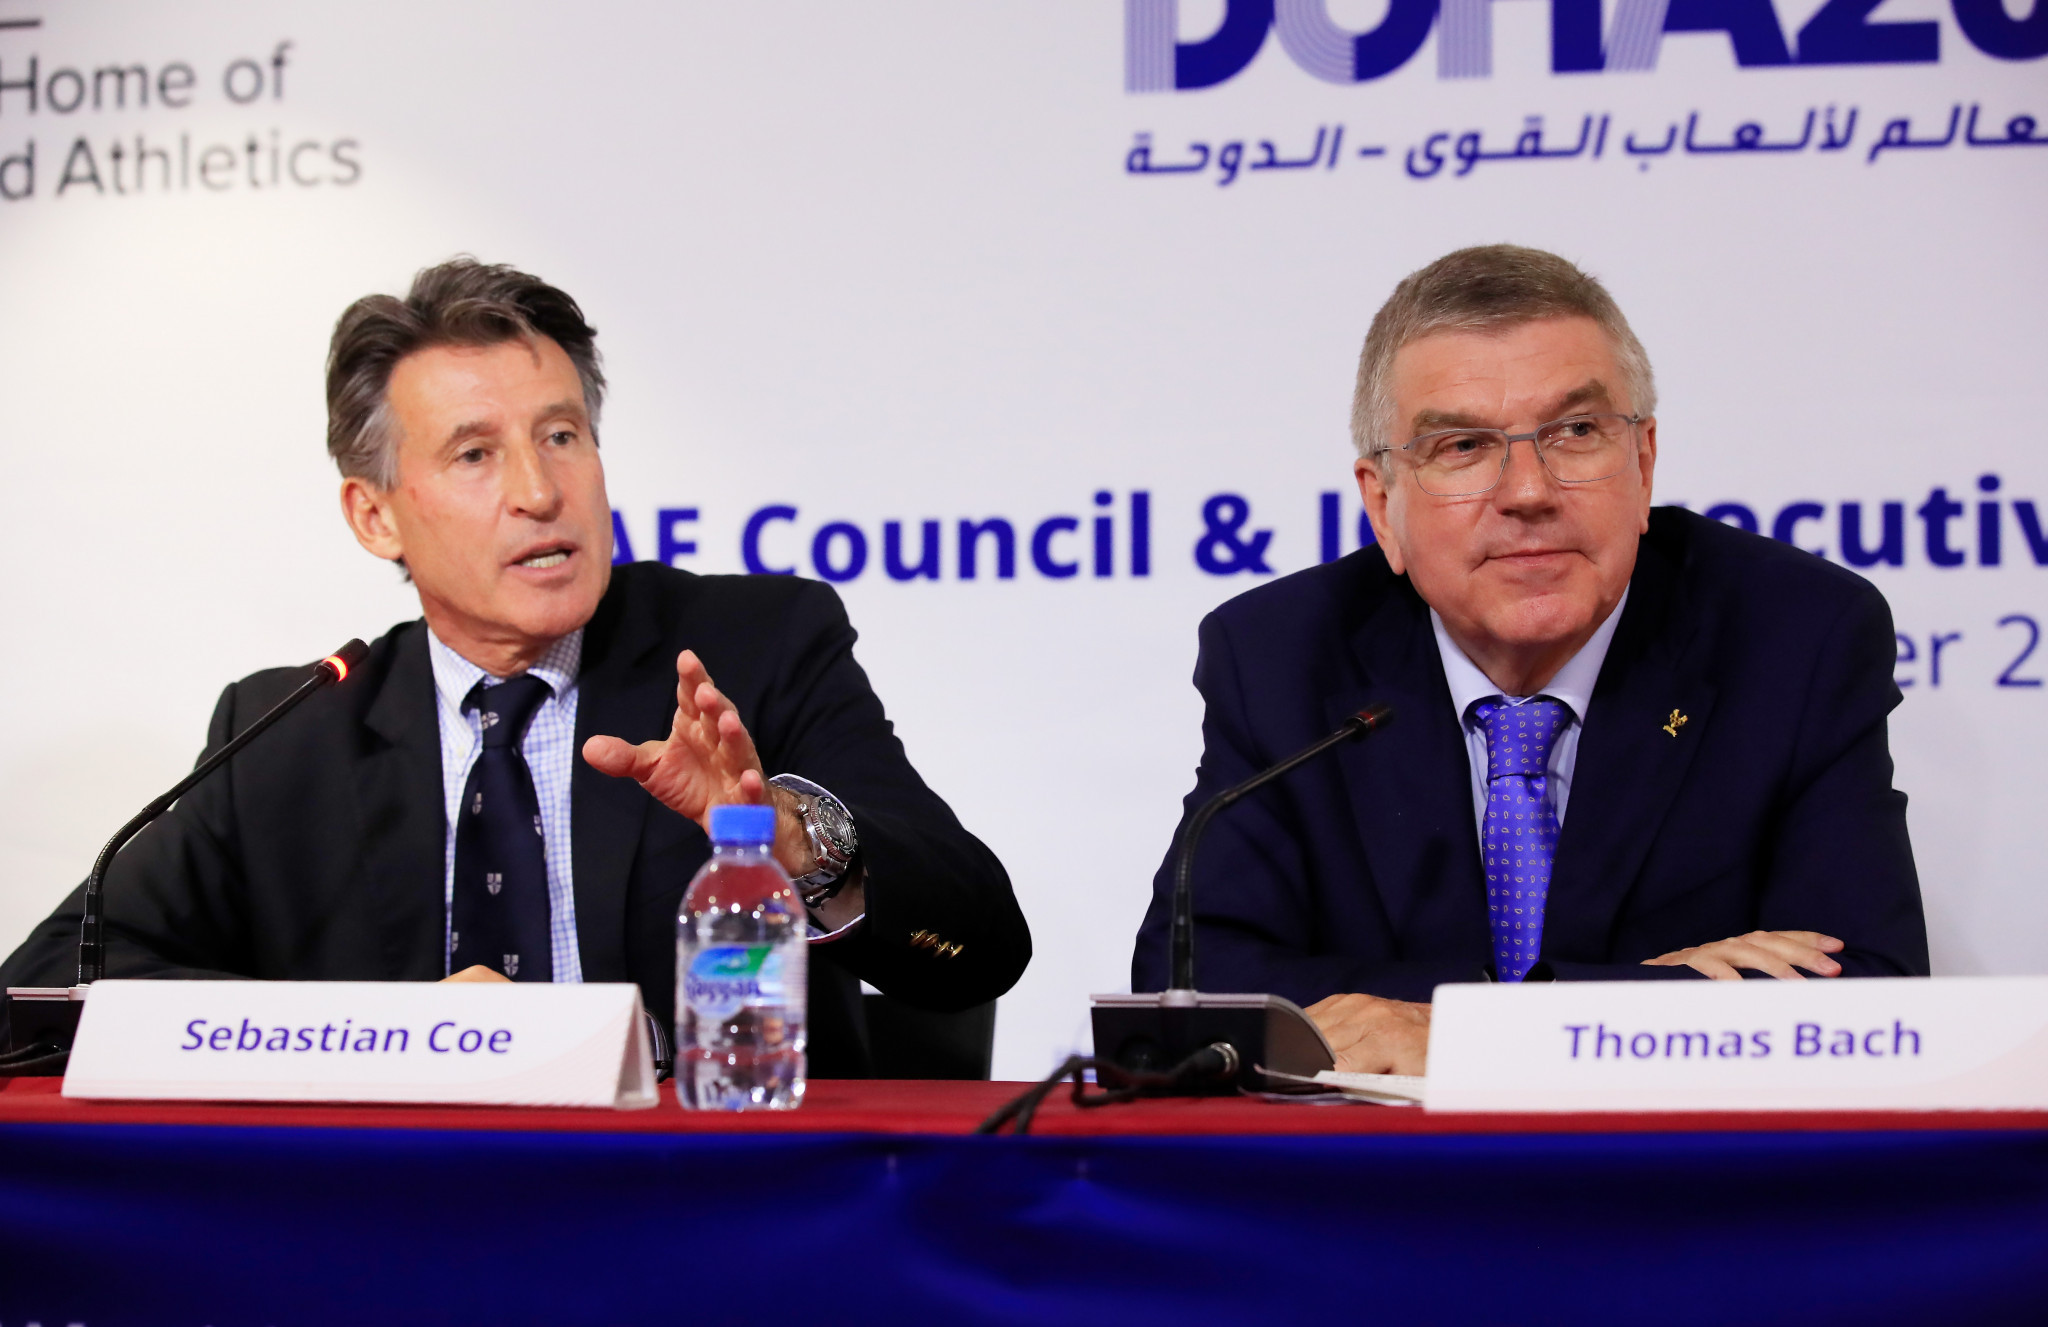 Sebastian Coe and Thomas Bach disagree over the place for peaceful protests at the Olympics ©Getty Images